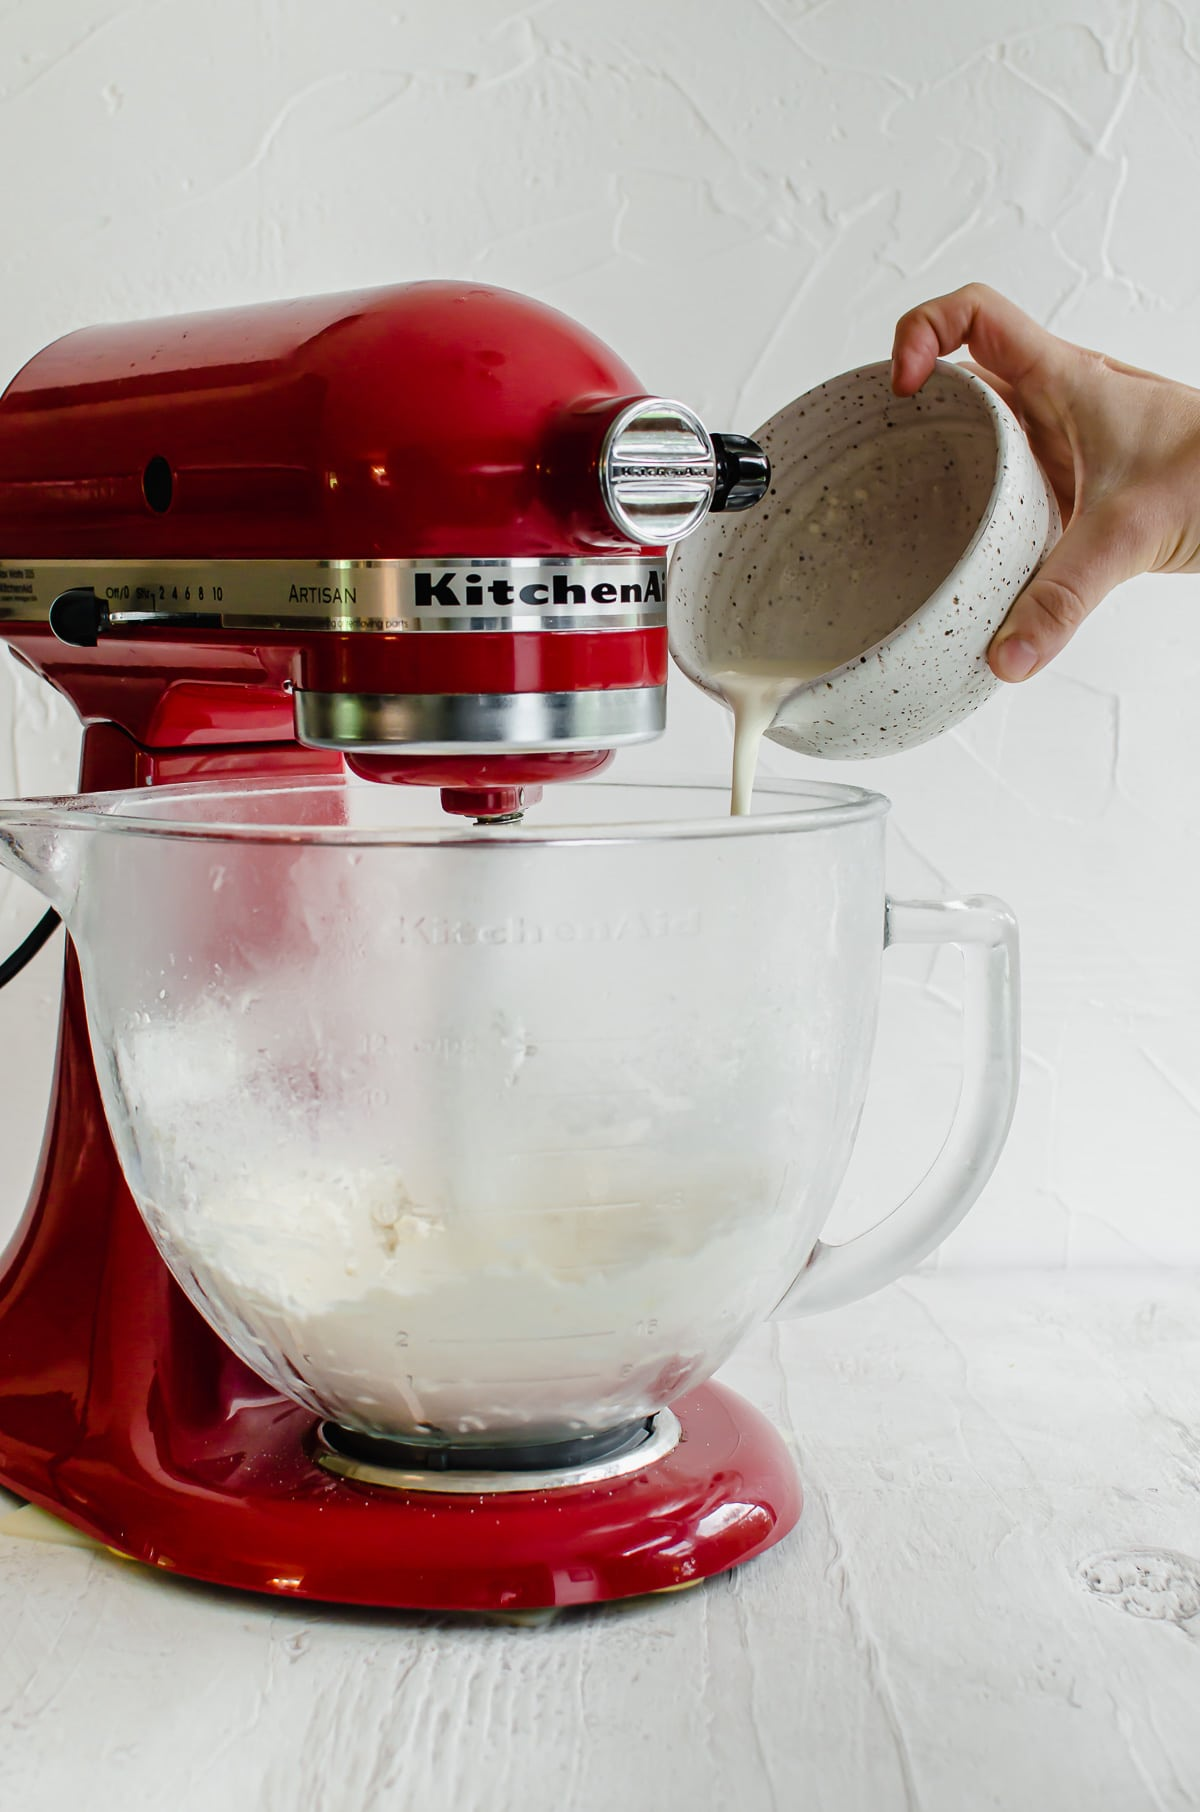 A hand pouring cream into a stand mixer bowl with dough inside.